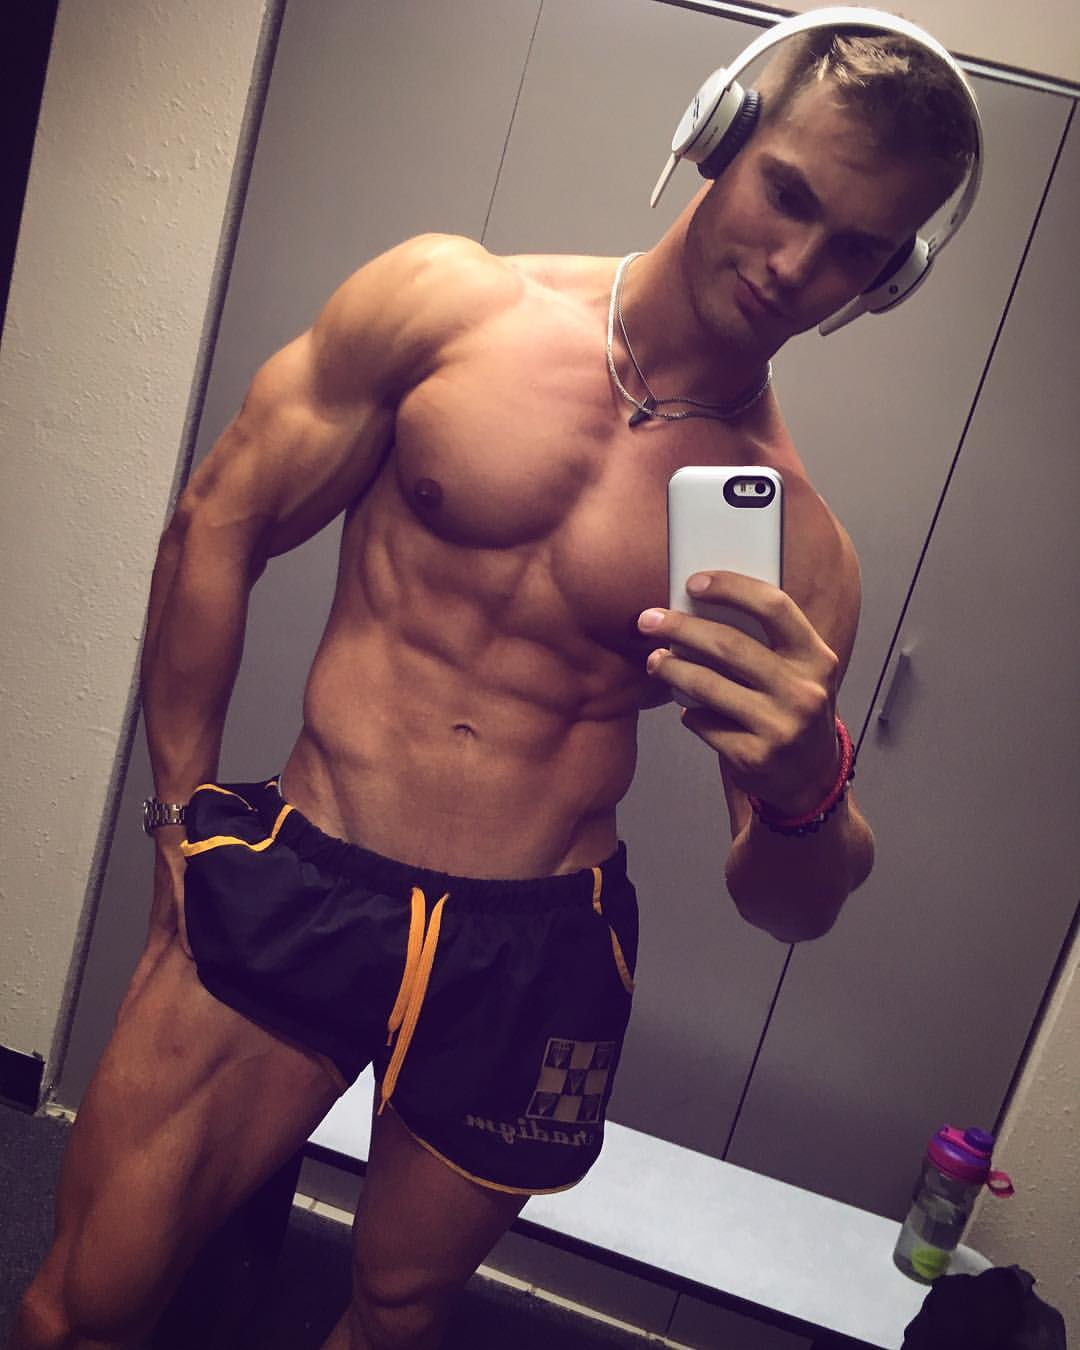 Daniel Peyer FITNESS MODEL, HEIGHT, WEIGHT, PHOTO, INSTAGRAM